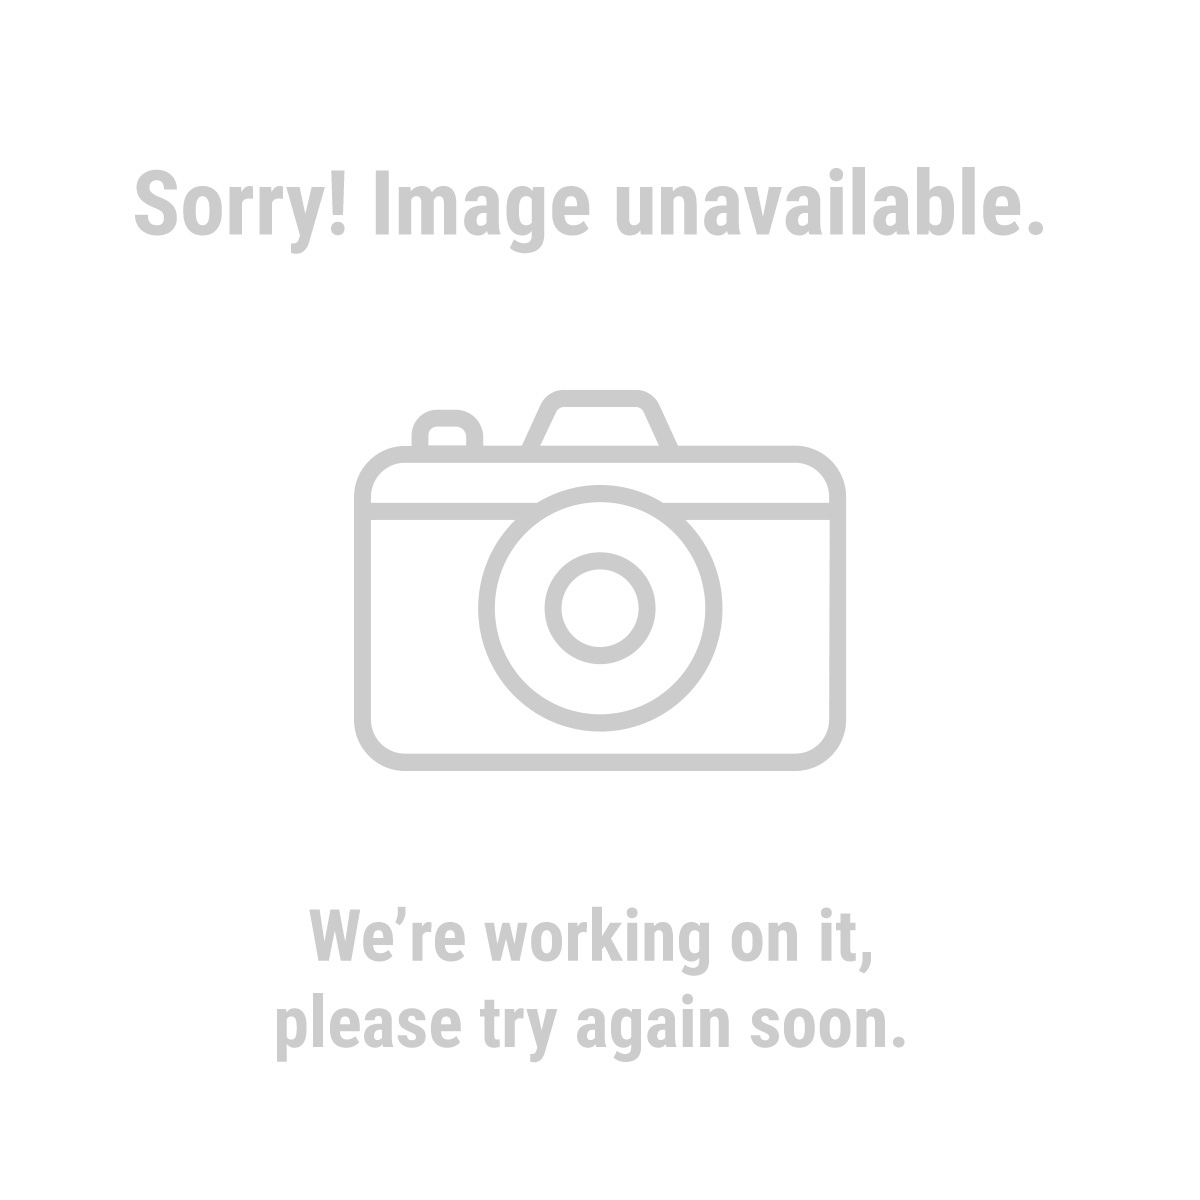 96769 1/4 Lb. Dark Grey Polish Compound